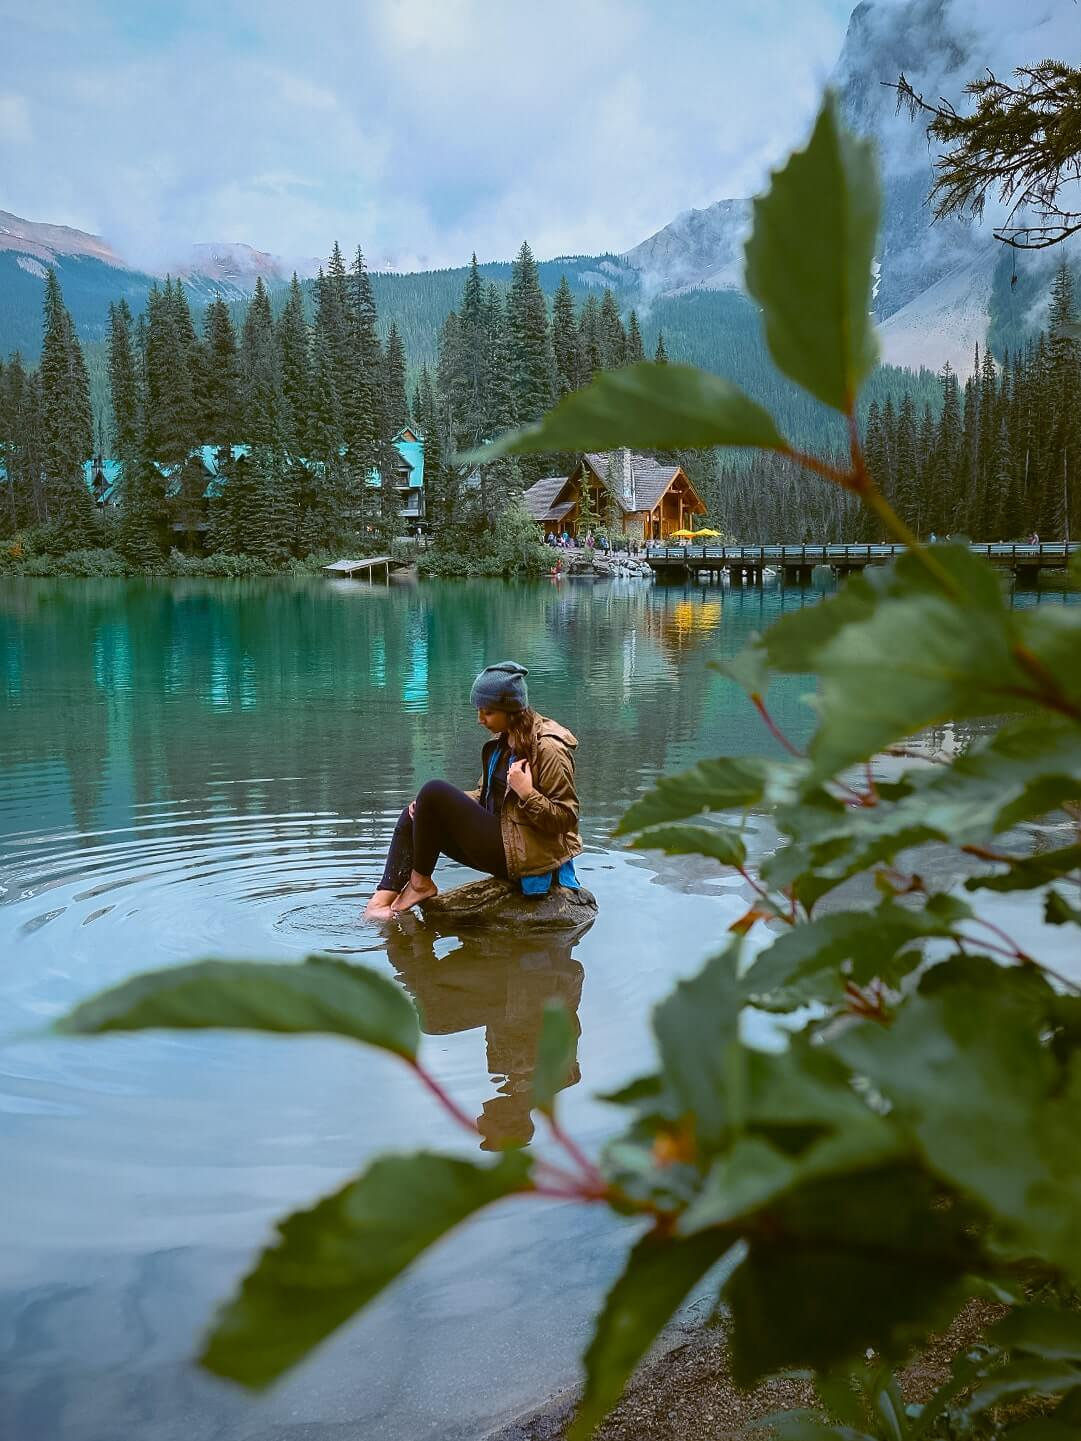 Visiting Emerald Lake - one day road trip through Yoho National Park from Banff National Park